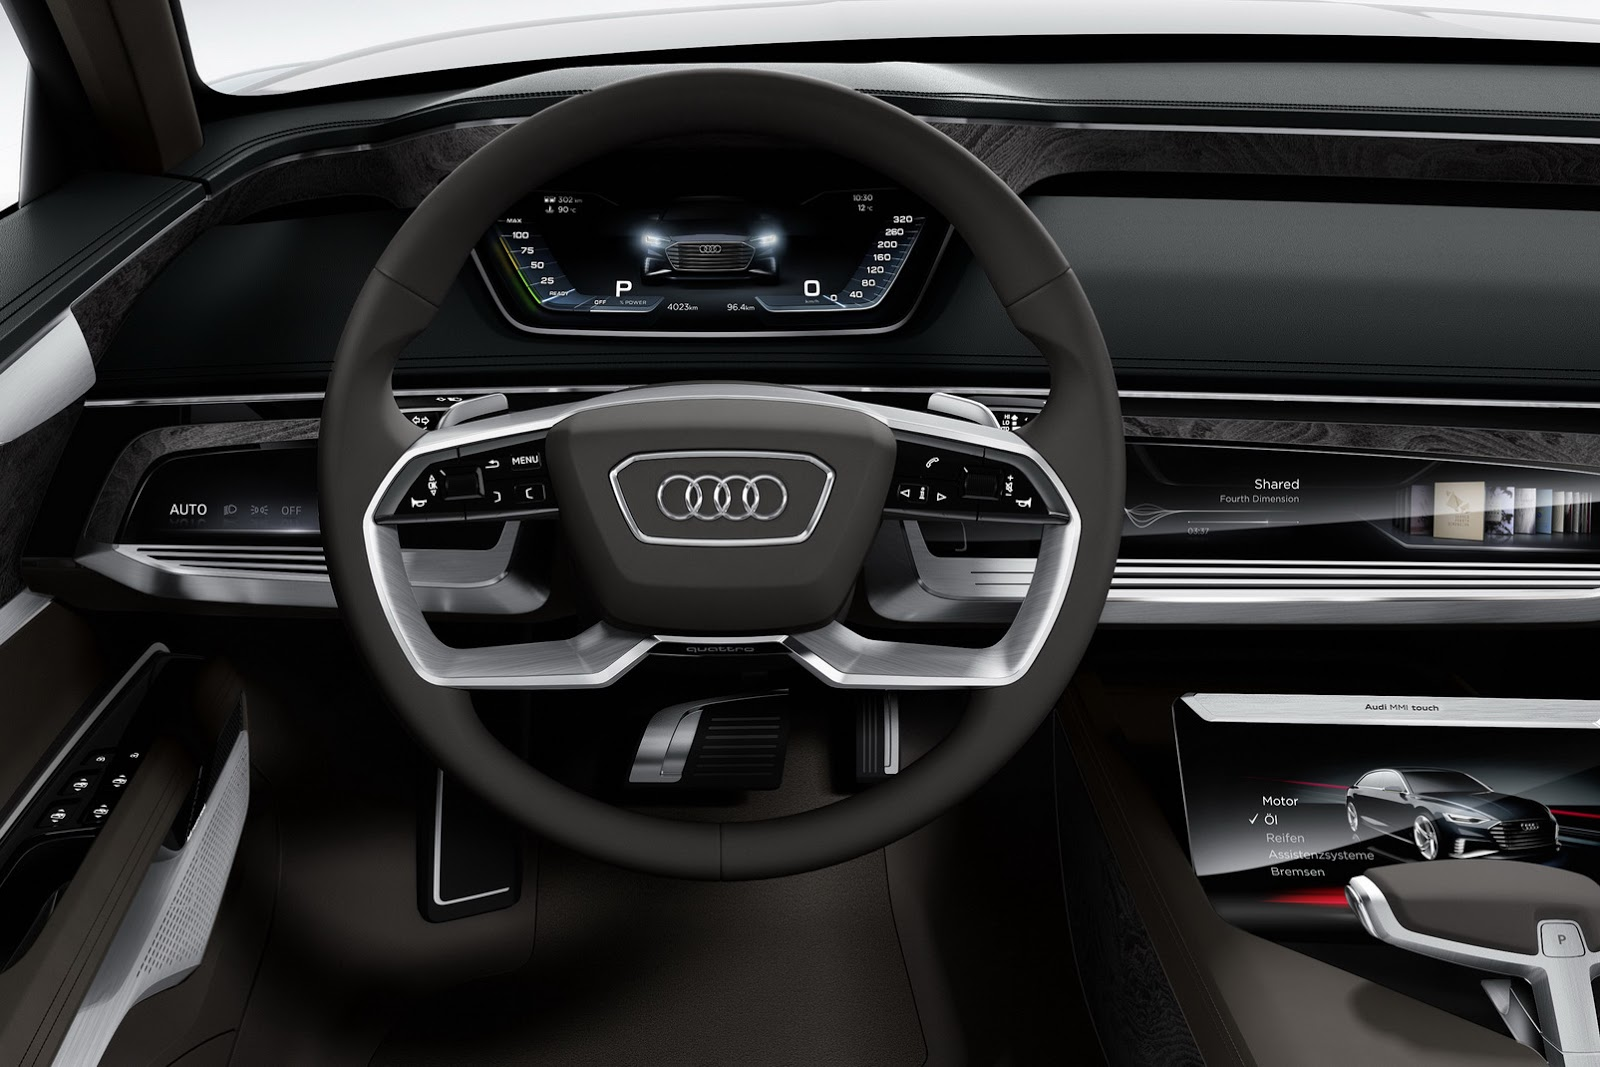 2018 Audi A8 Could Bring a New Interior Concept ...